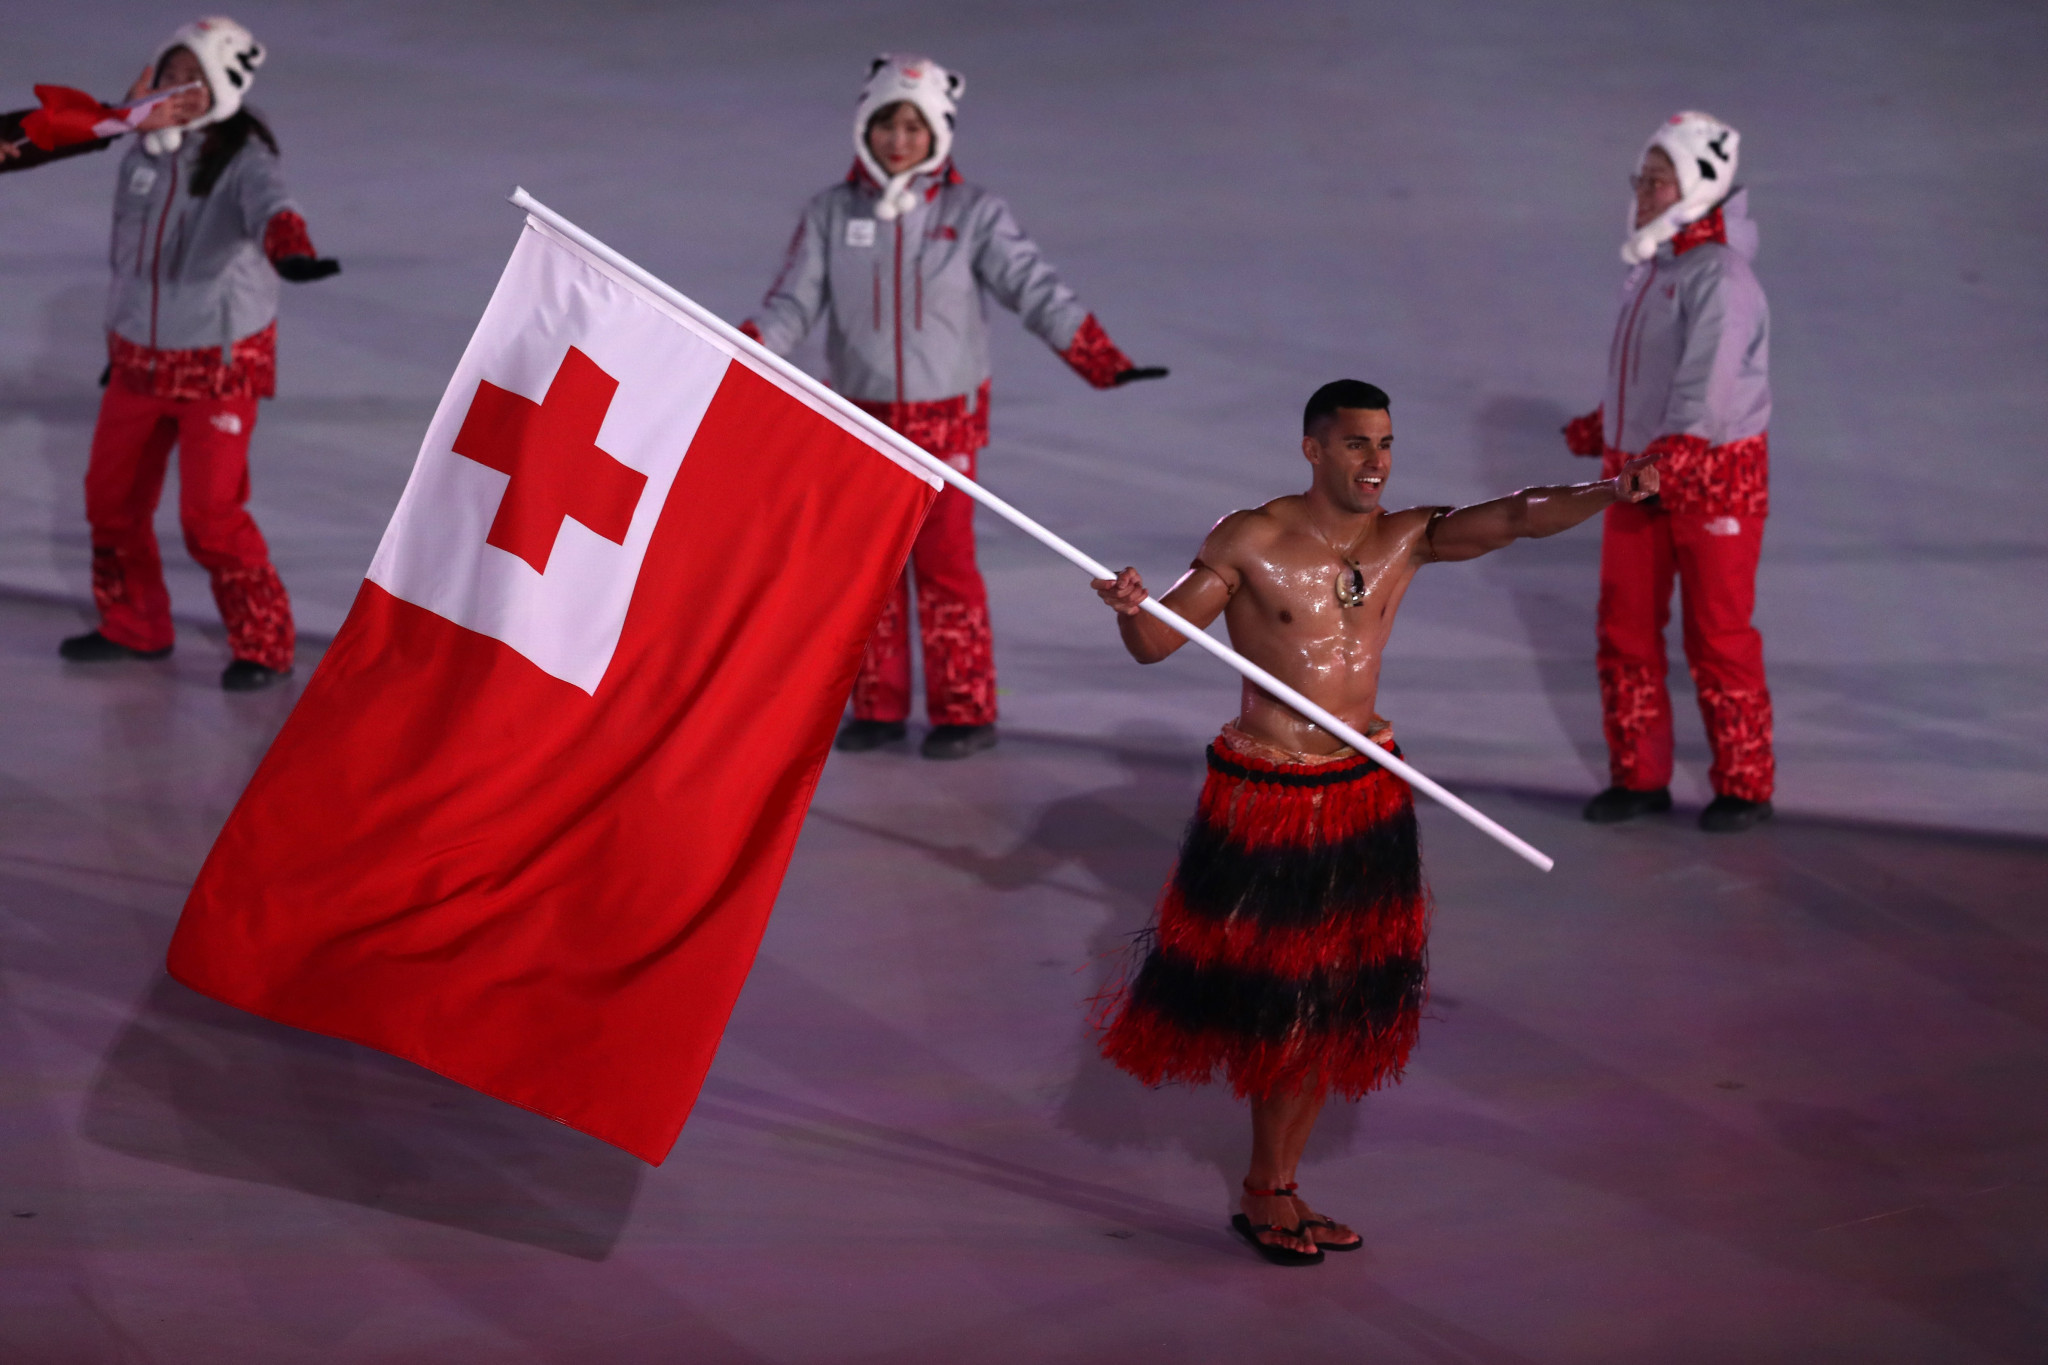 Pita Taufatofua appeared at the Pyeongchang 2018 Opening Ceremony as he did at Rio 2016 ©Getty Images